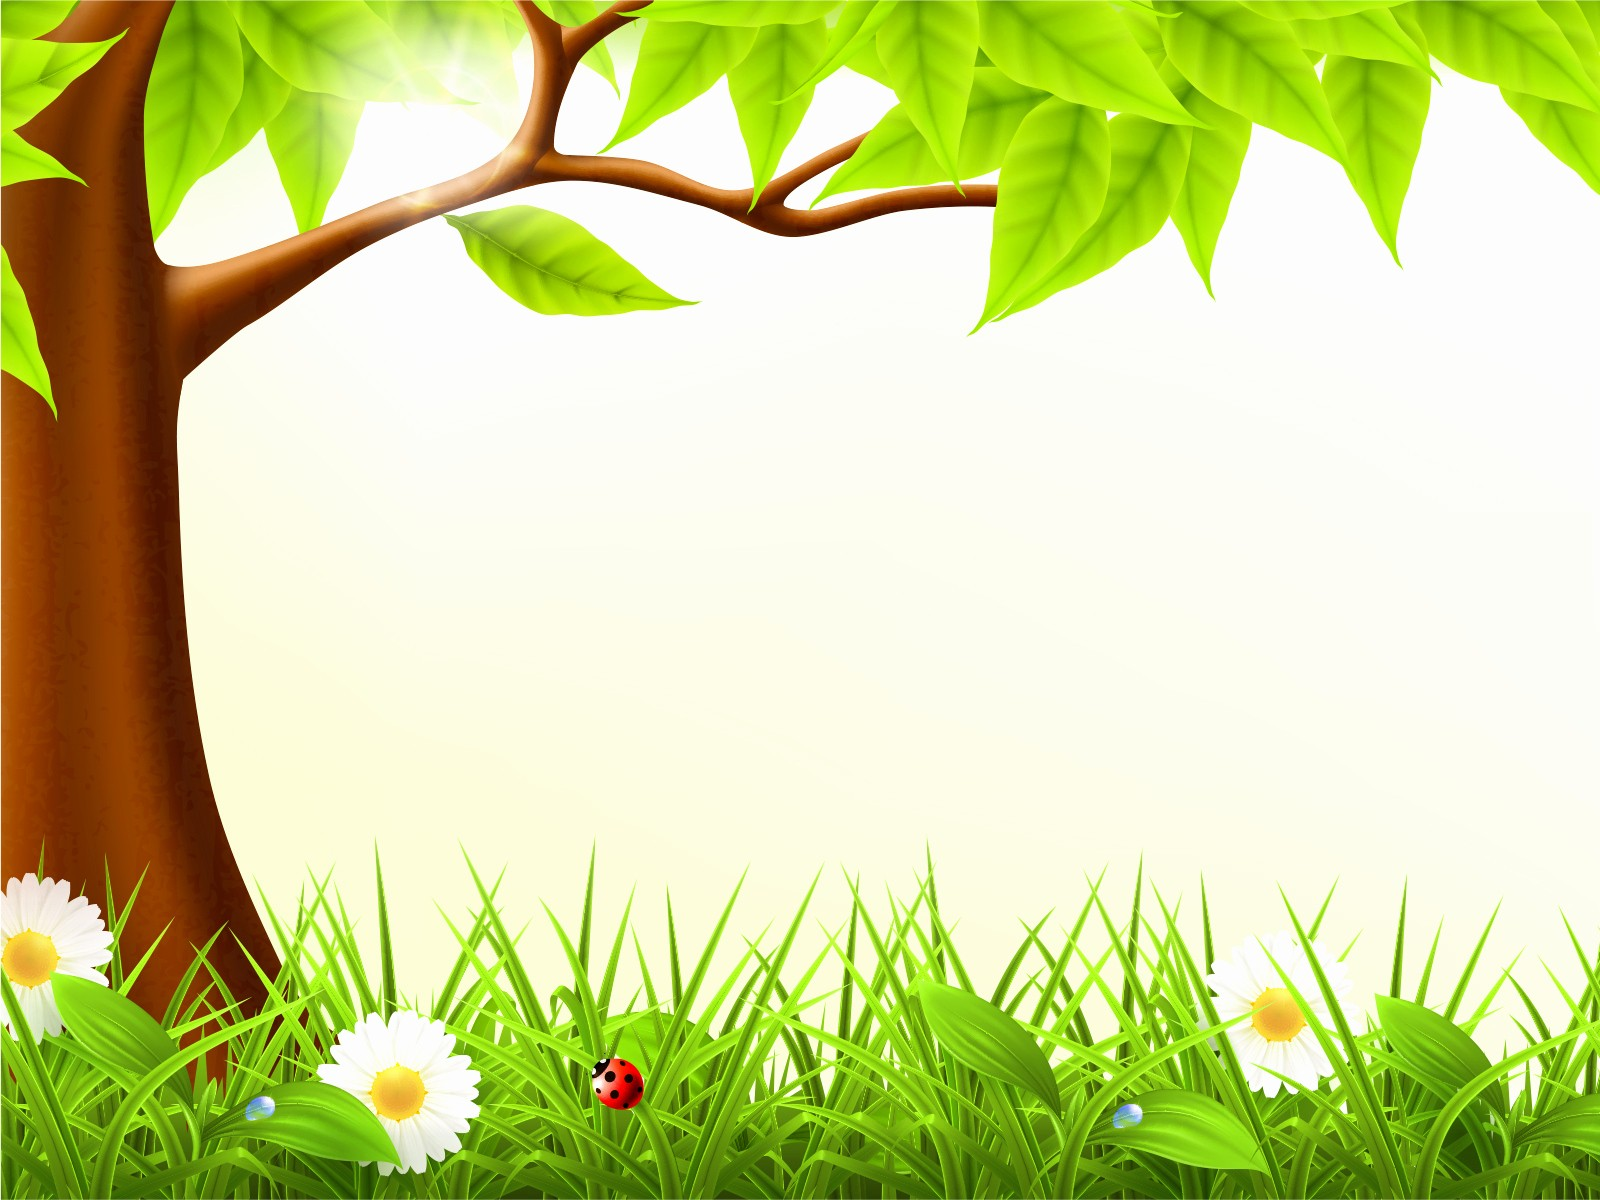 Cute School Backgrounds for Powerpoint Unique Cute forest Spring Backgrounds